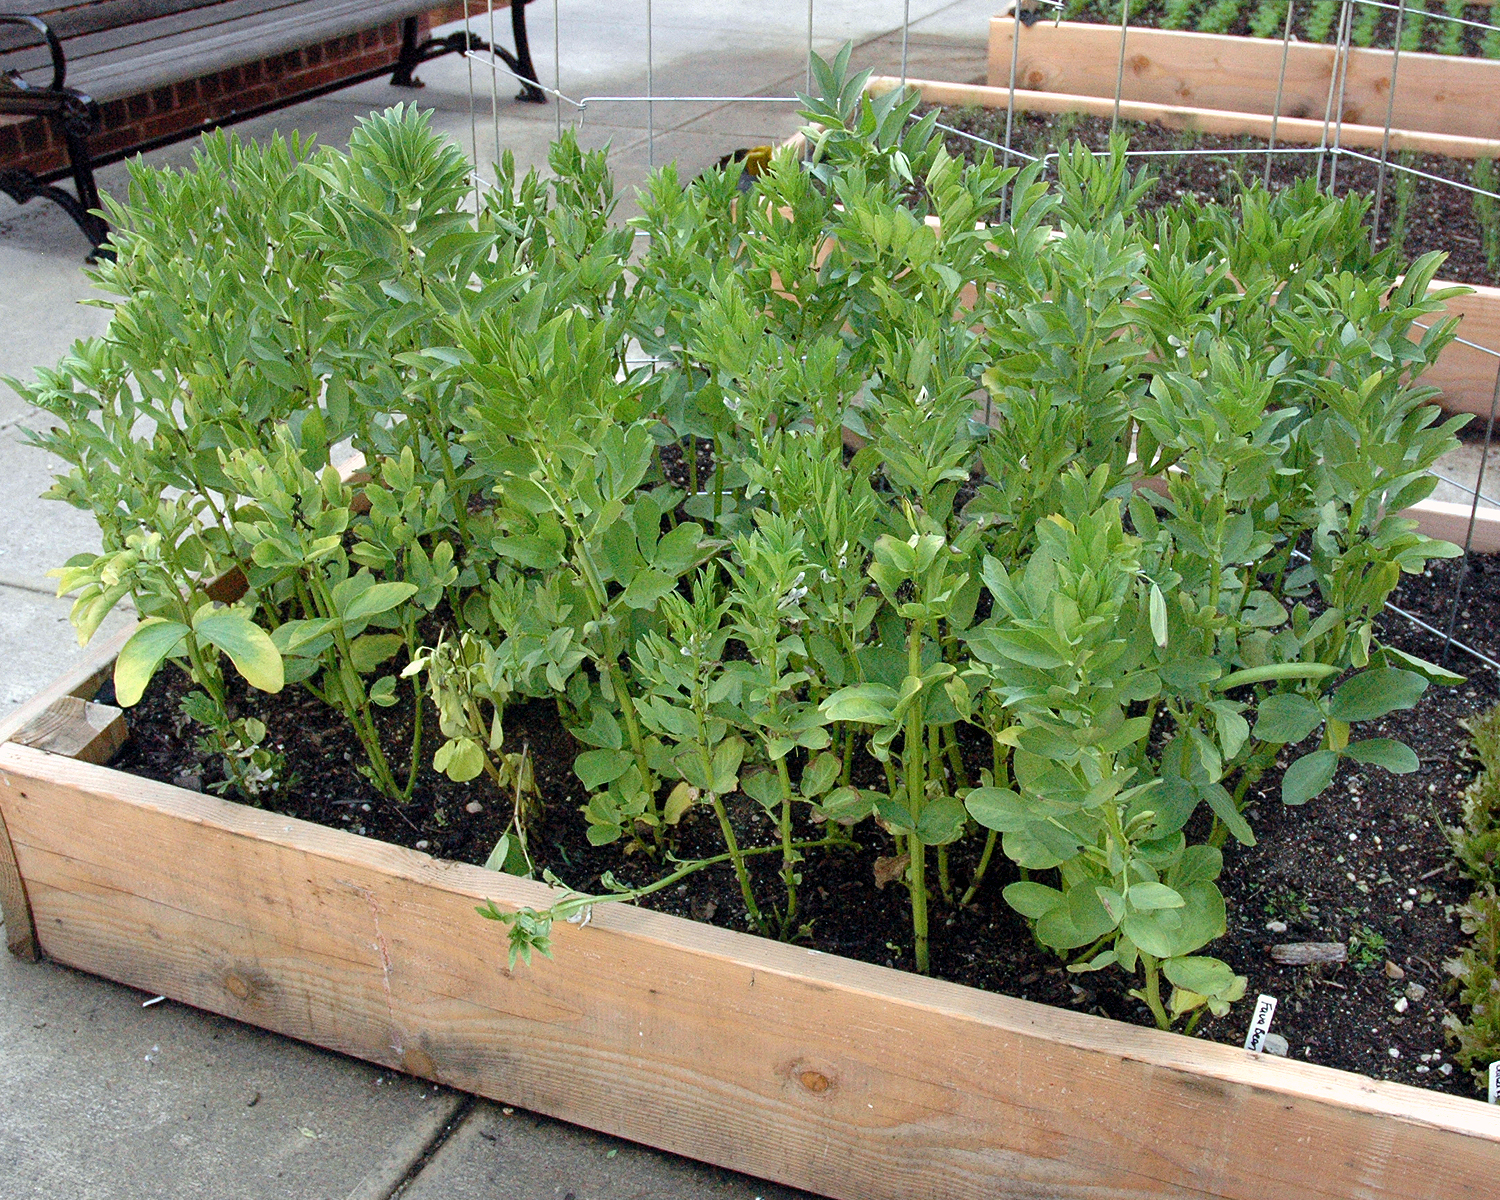 Fava Beans growing in one of the planters